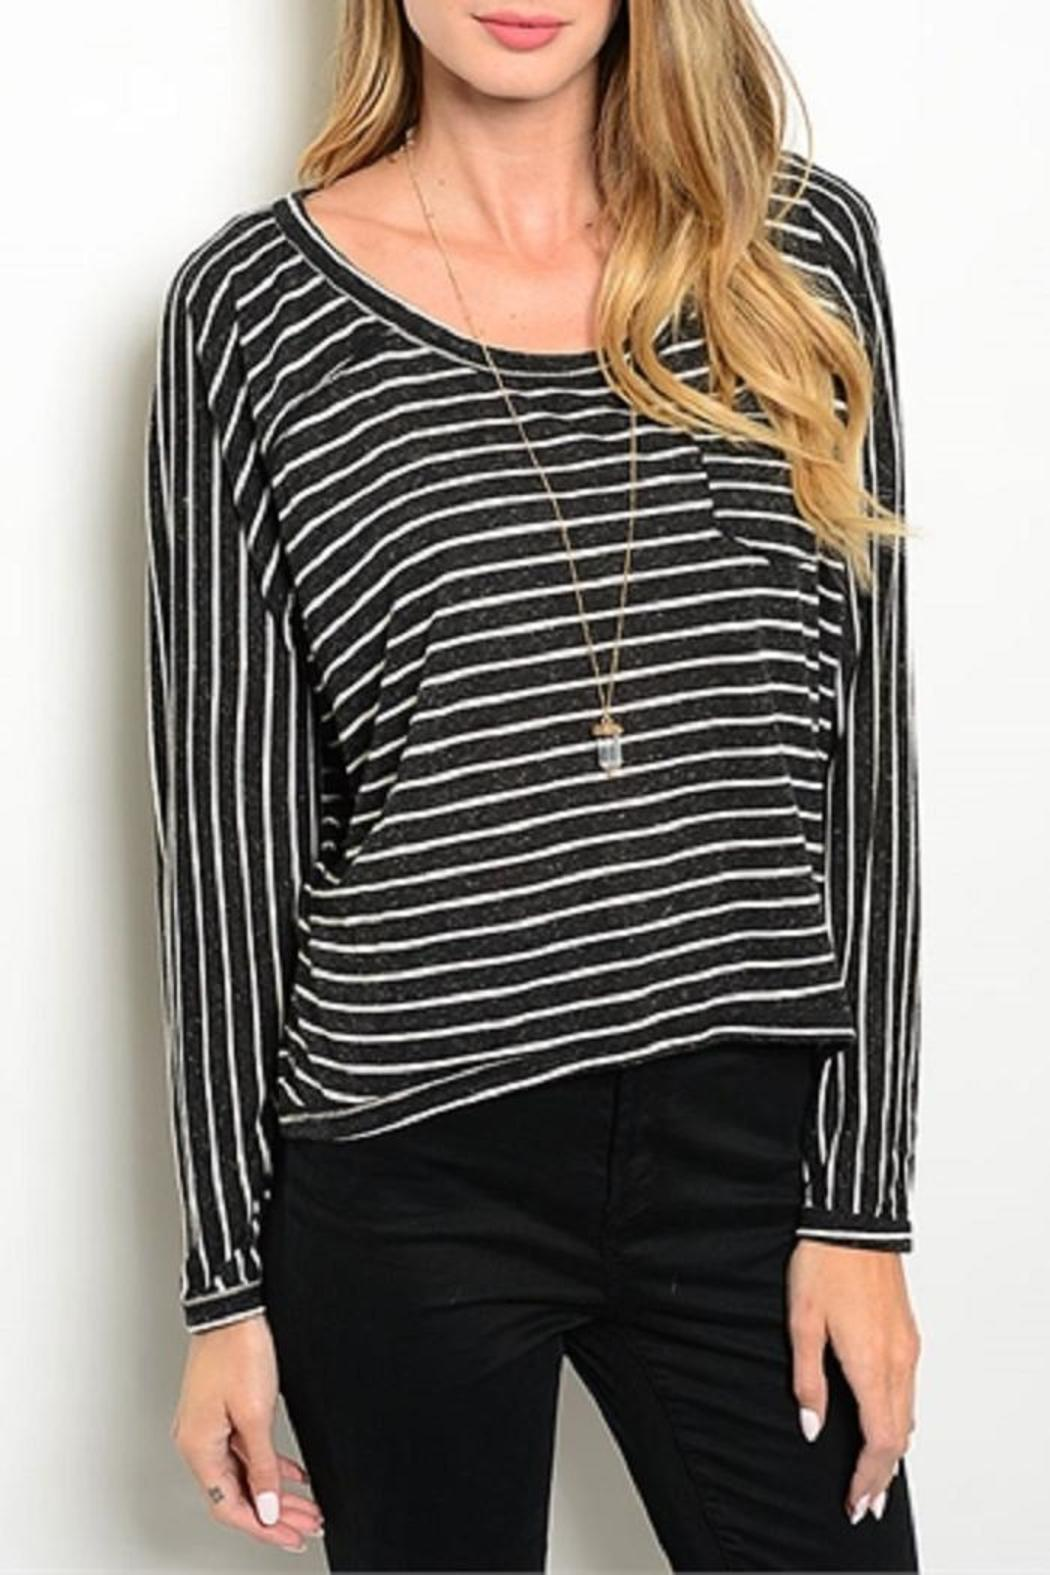 Adore Clothes & More Striped Top - Main Image